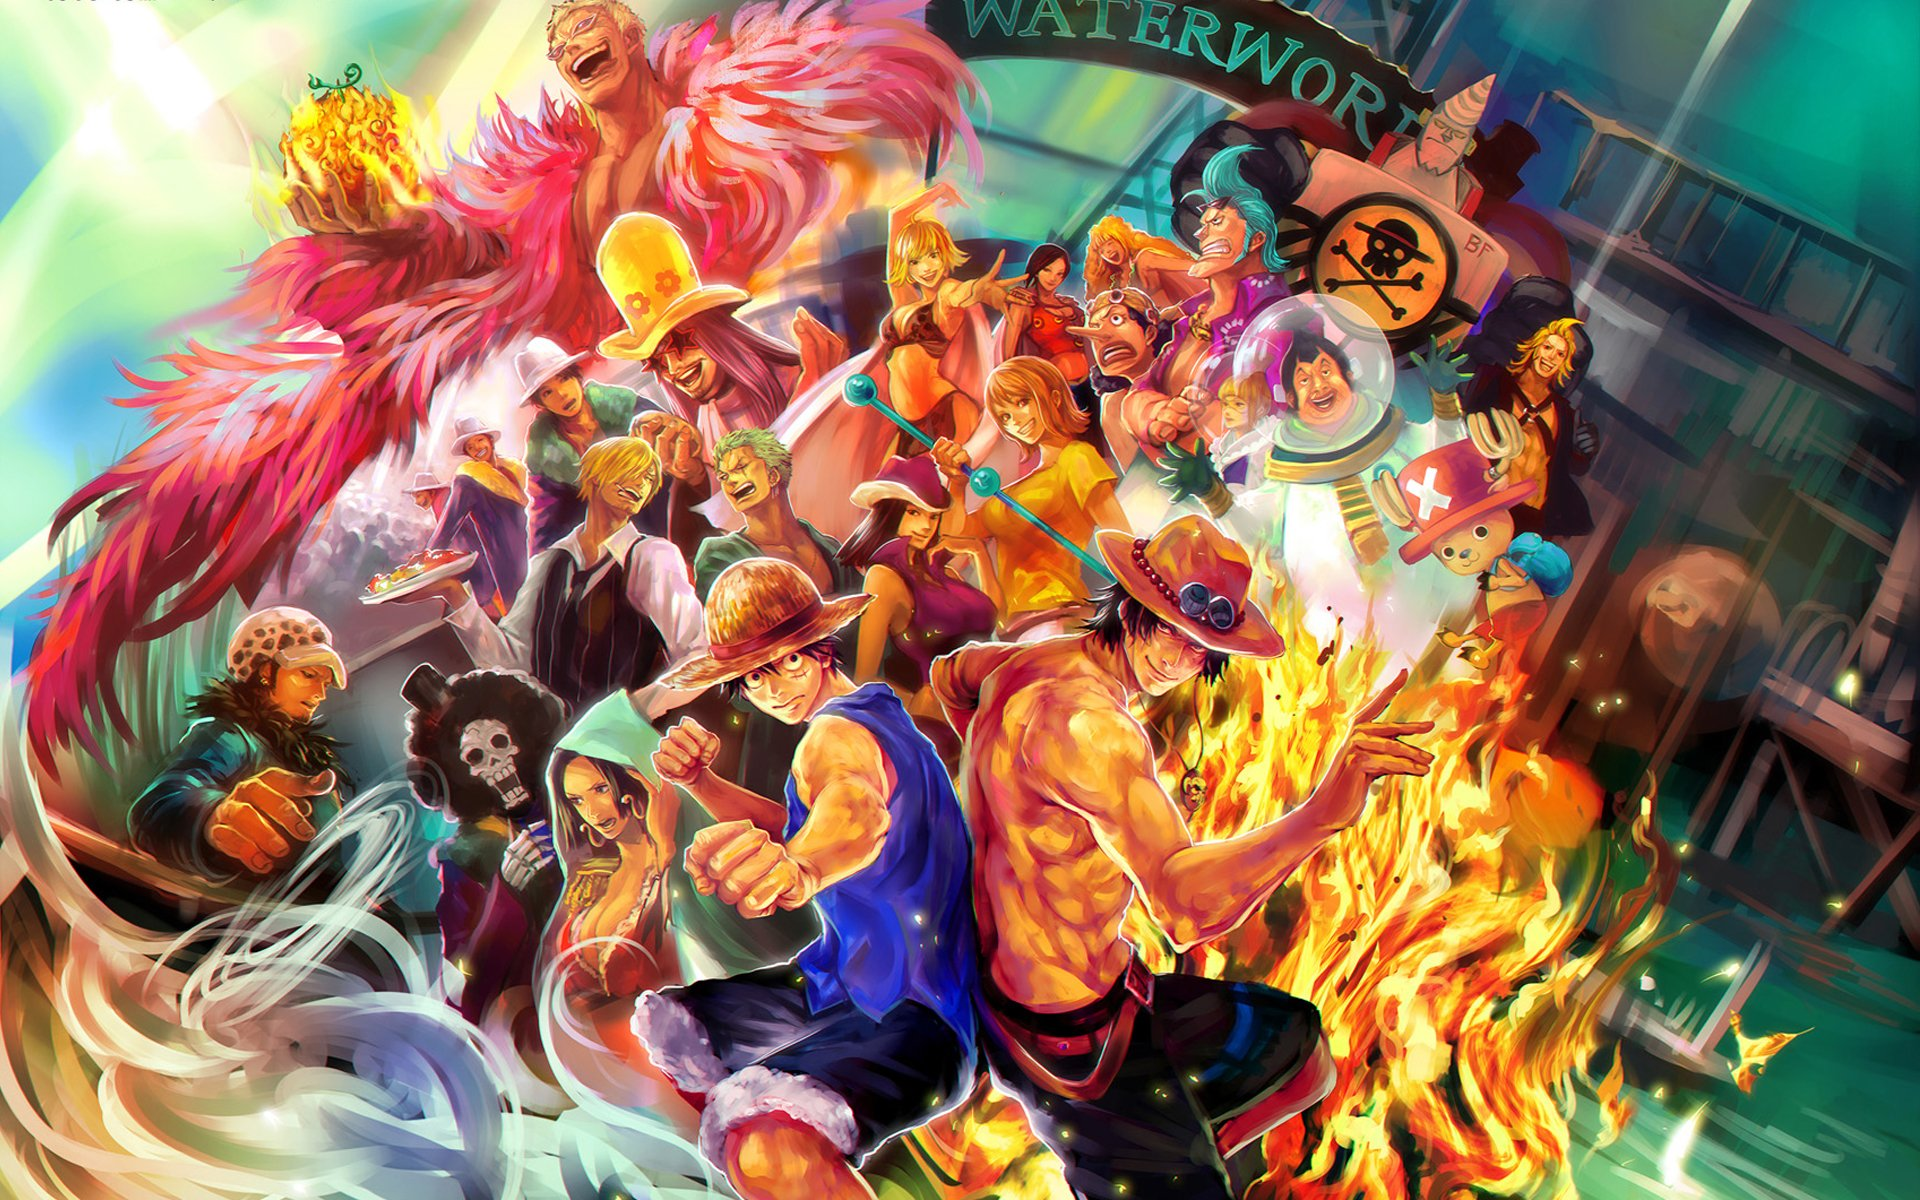 Anime - One Piece  Franky (One Piece) Donquixote Doflamingo Trafalgar Law Portgas D. Ace Usopp (One Piece) Brook (One Piece) Tony Tony Chopper Nico Robin Nami (One Piece) Sanji (One Piece) Zoro Roronoa Monkey D. Luffy Wallpaper